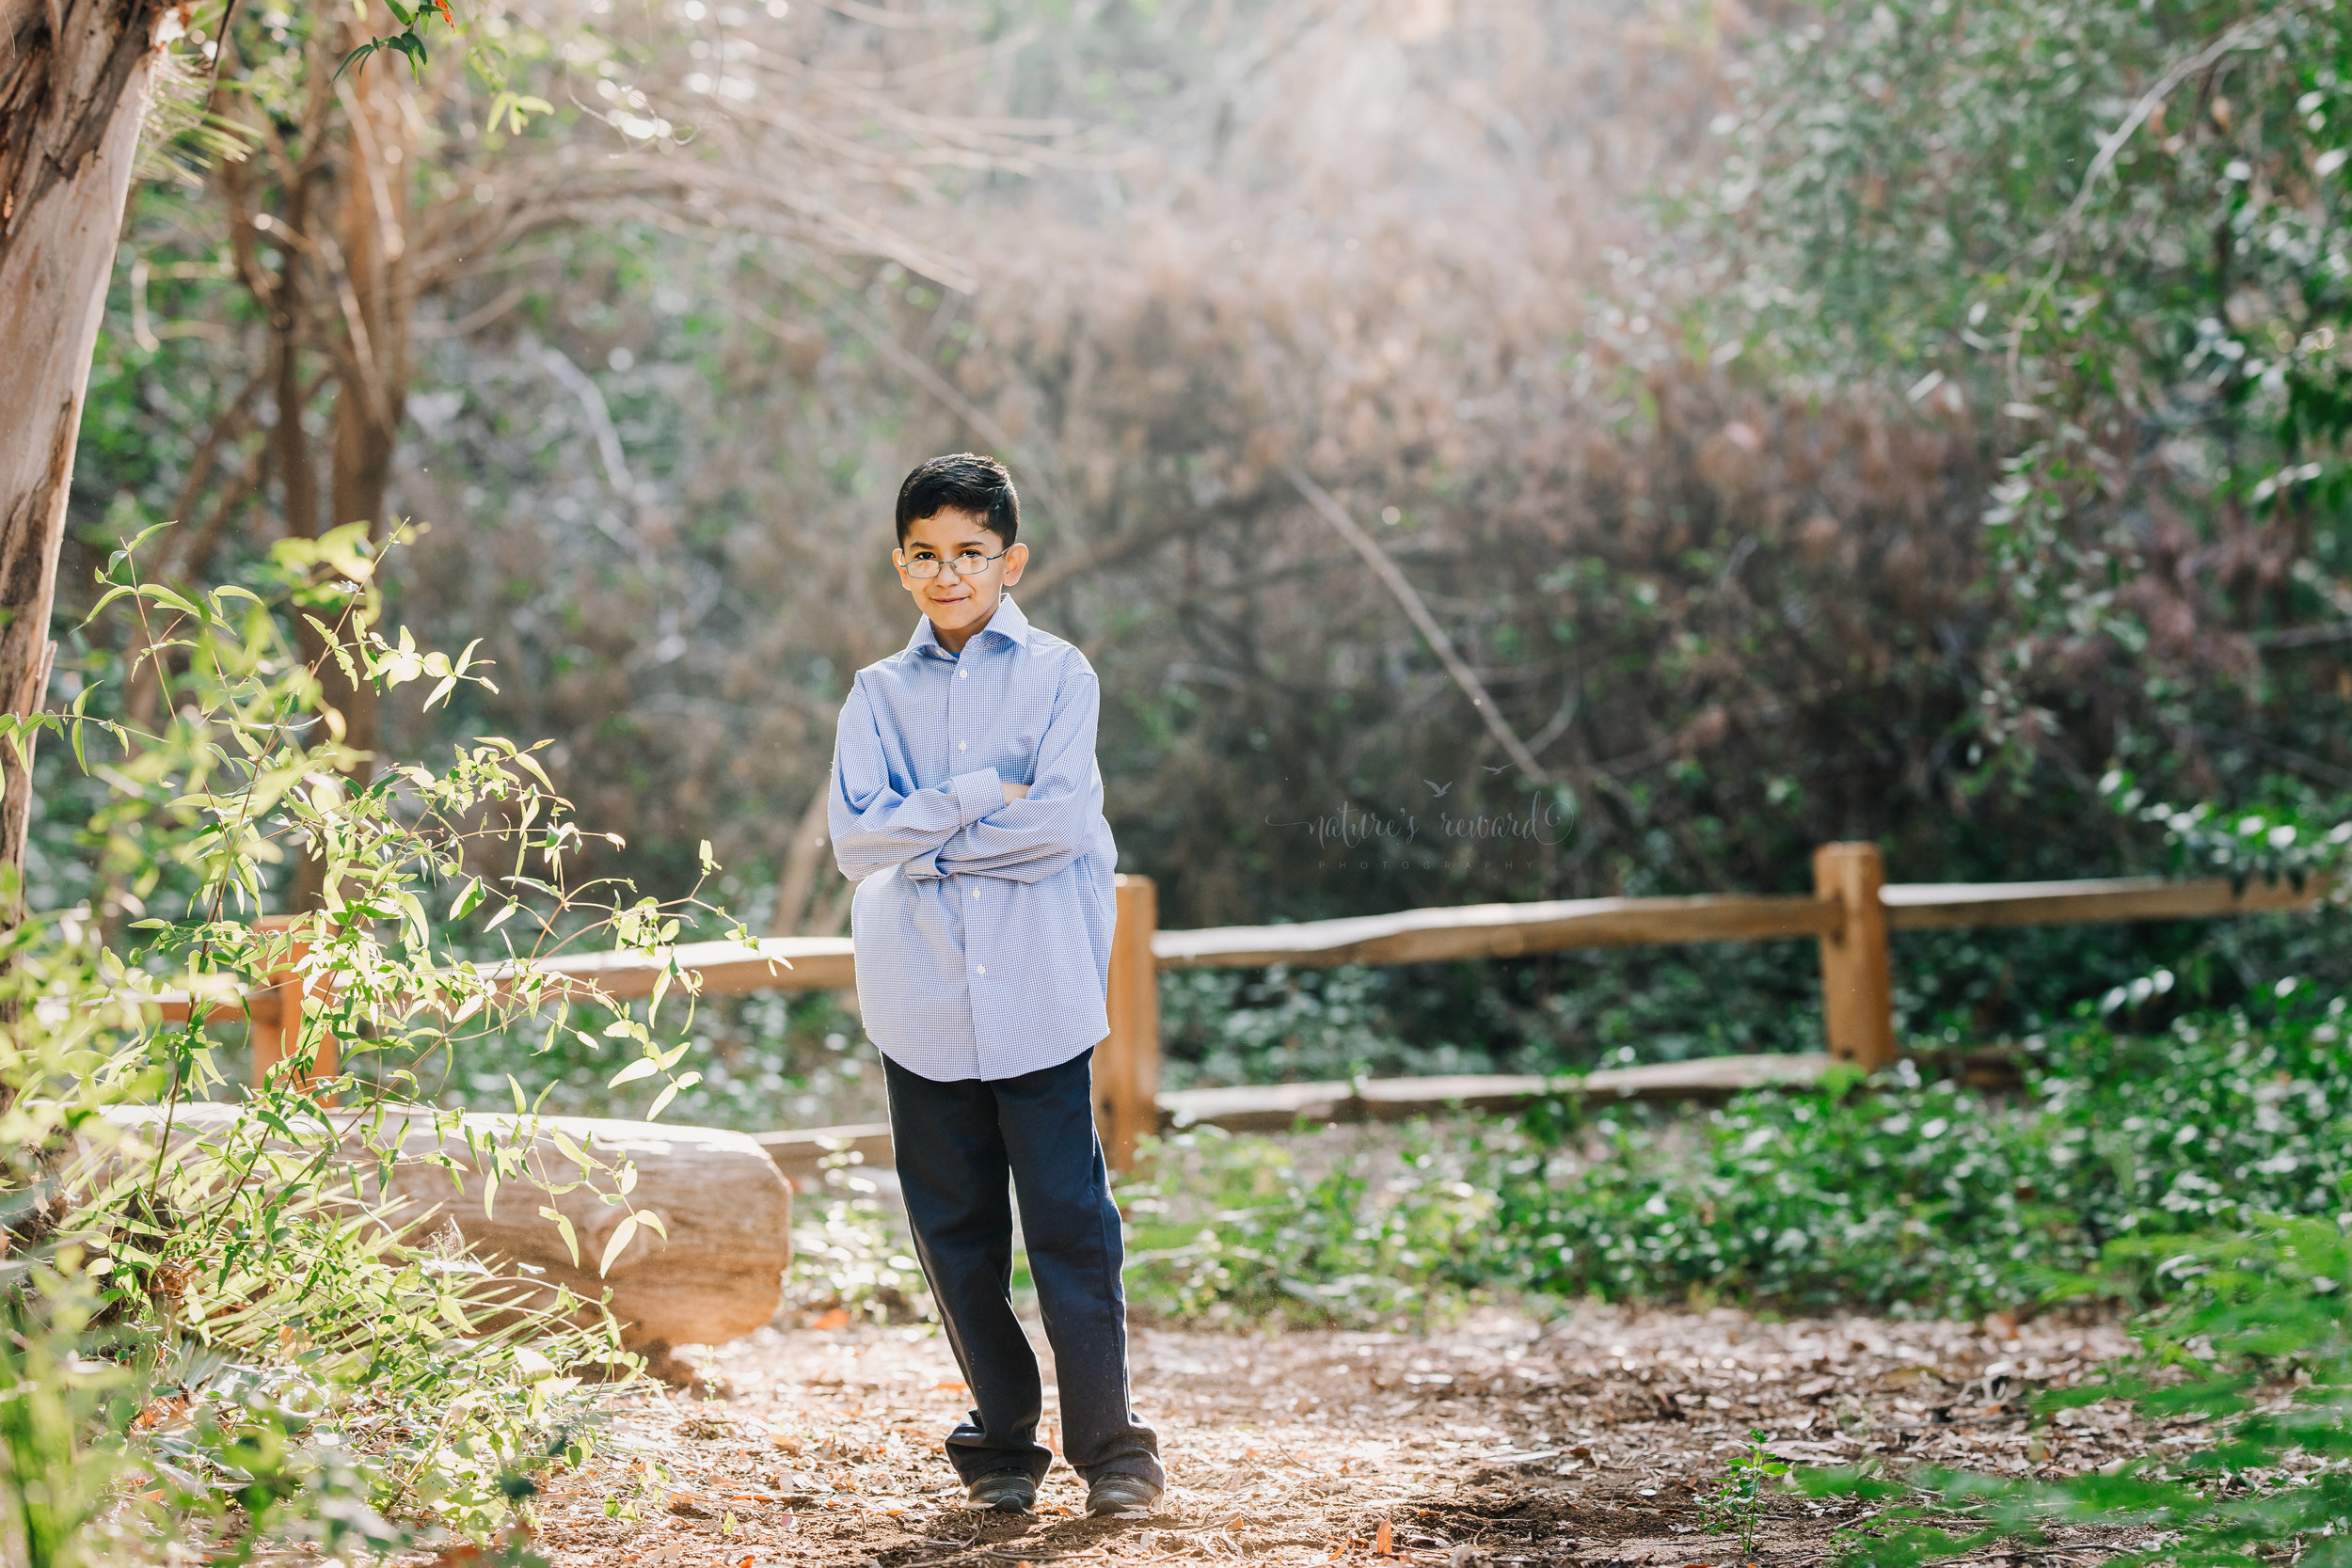 Handsome young boy wearing blues photography portrait by Nature's Reward Photography.